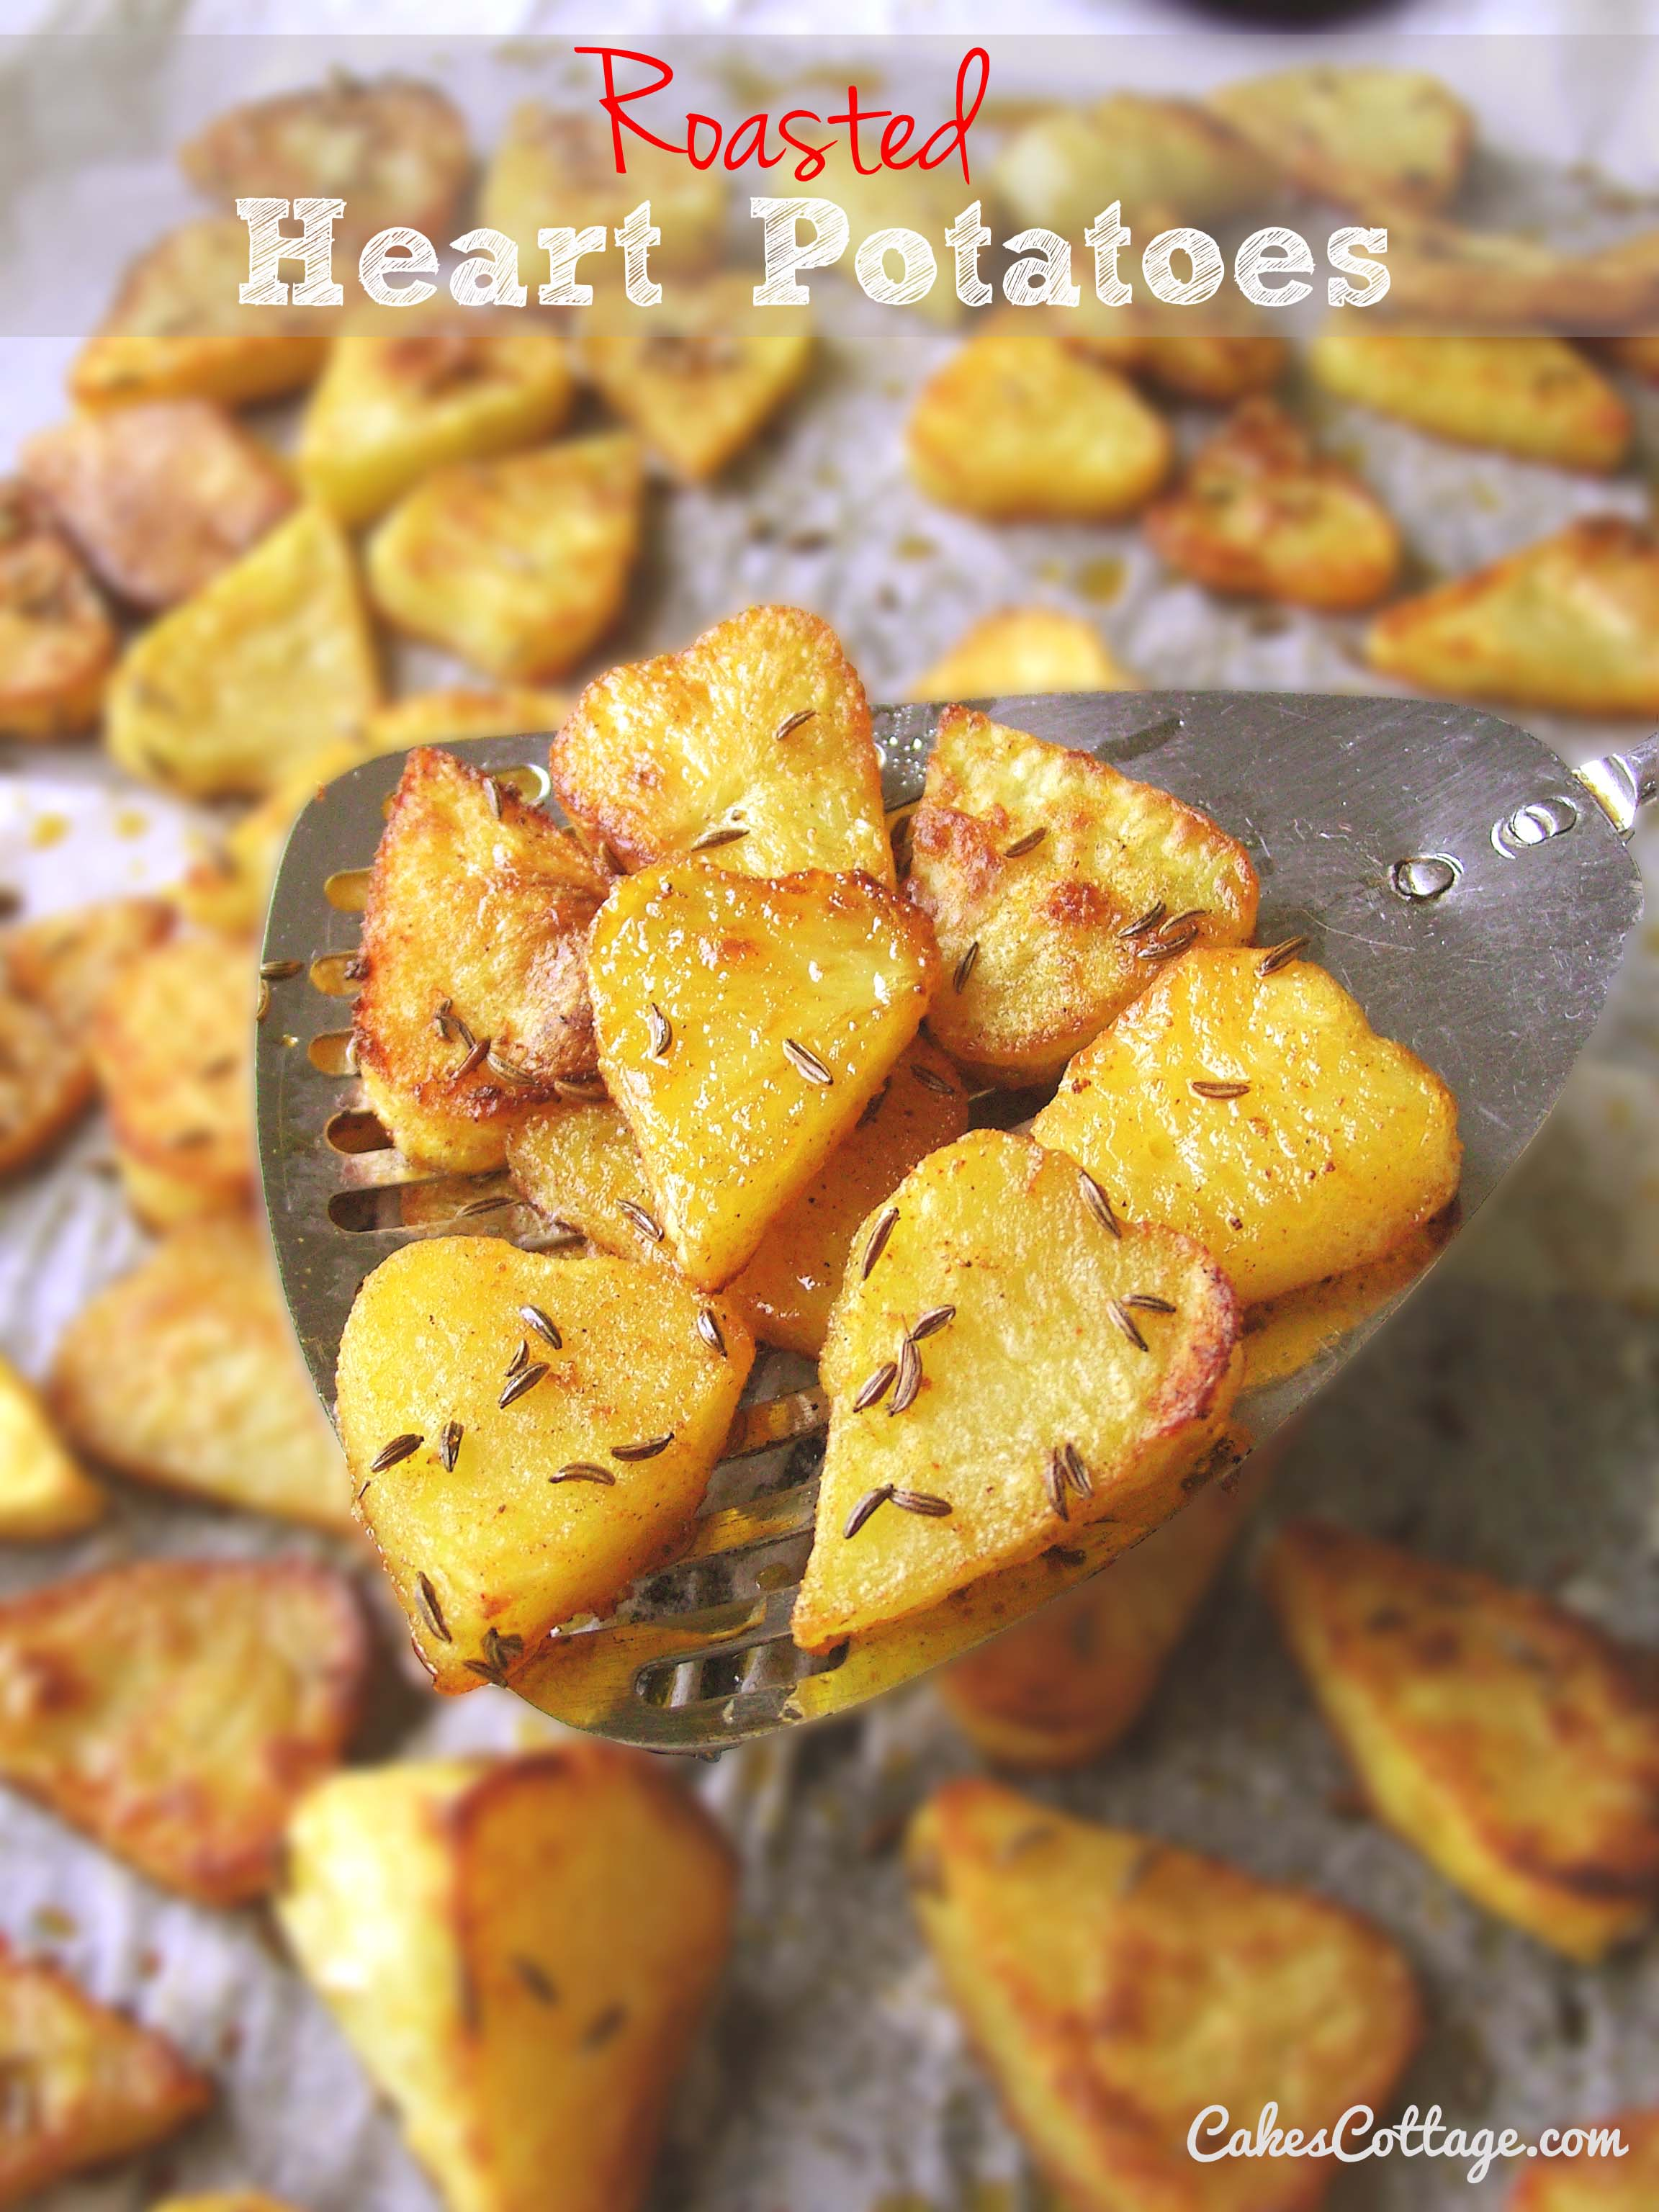 Roasted-Heart-Potatoes